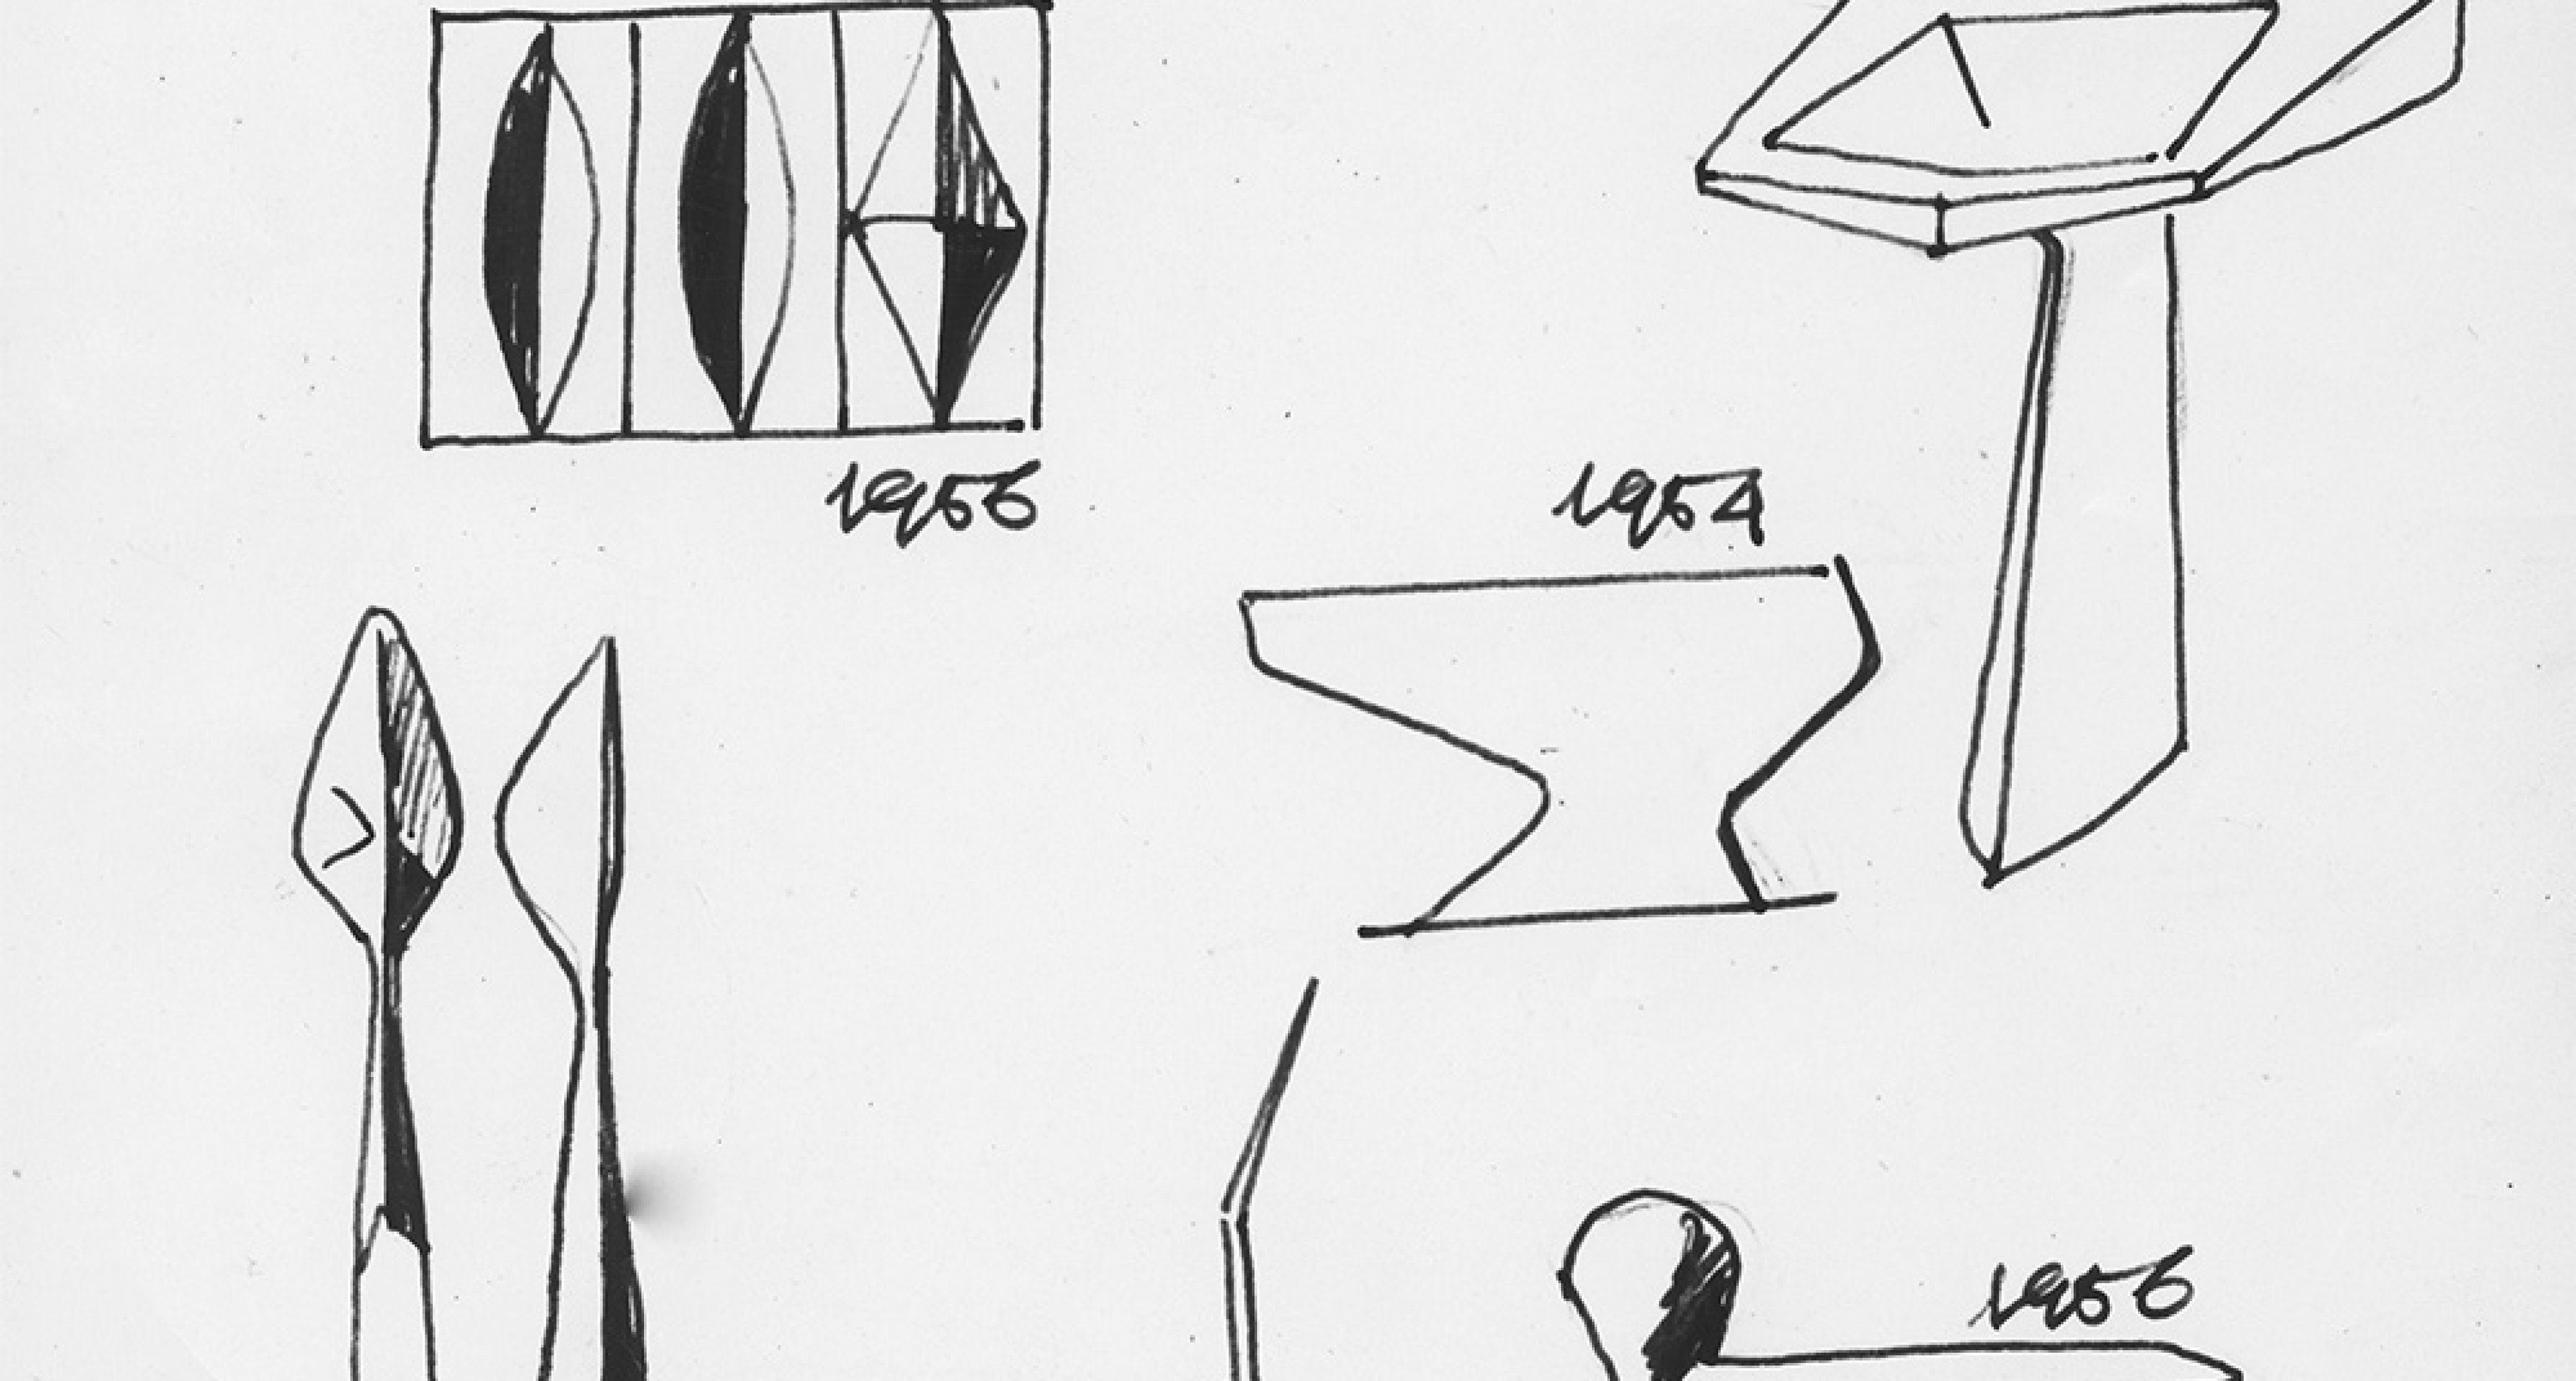 Drawings presented at industrial design exhibition at the 11th Milan Triennial — 1957, ink on paper © Gio Ponti Archives, Milan